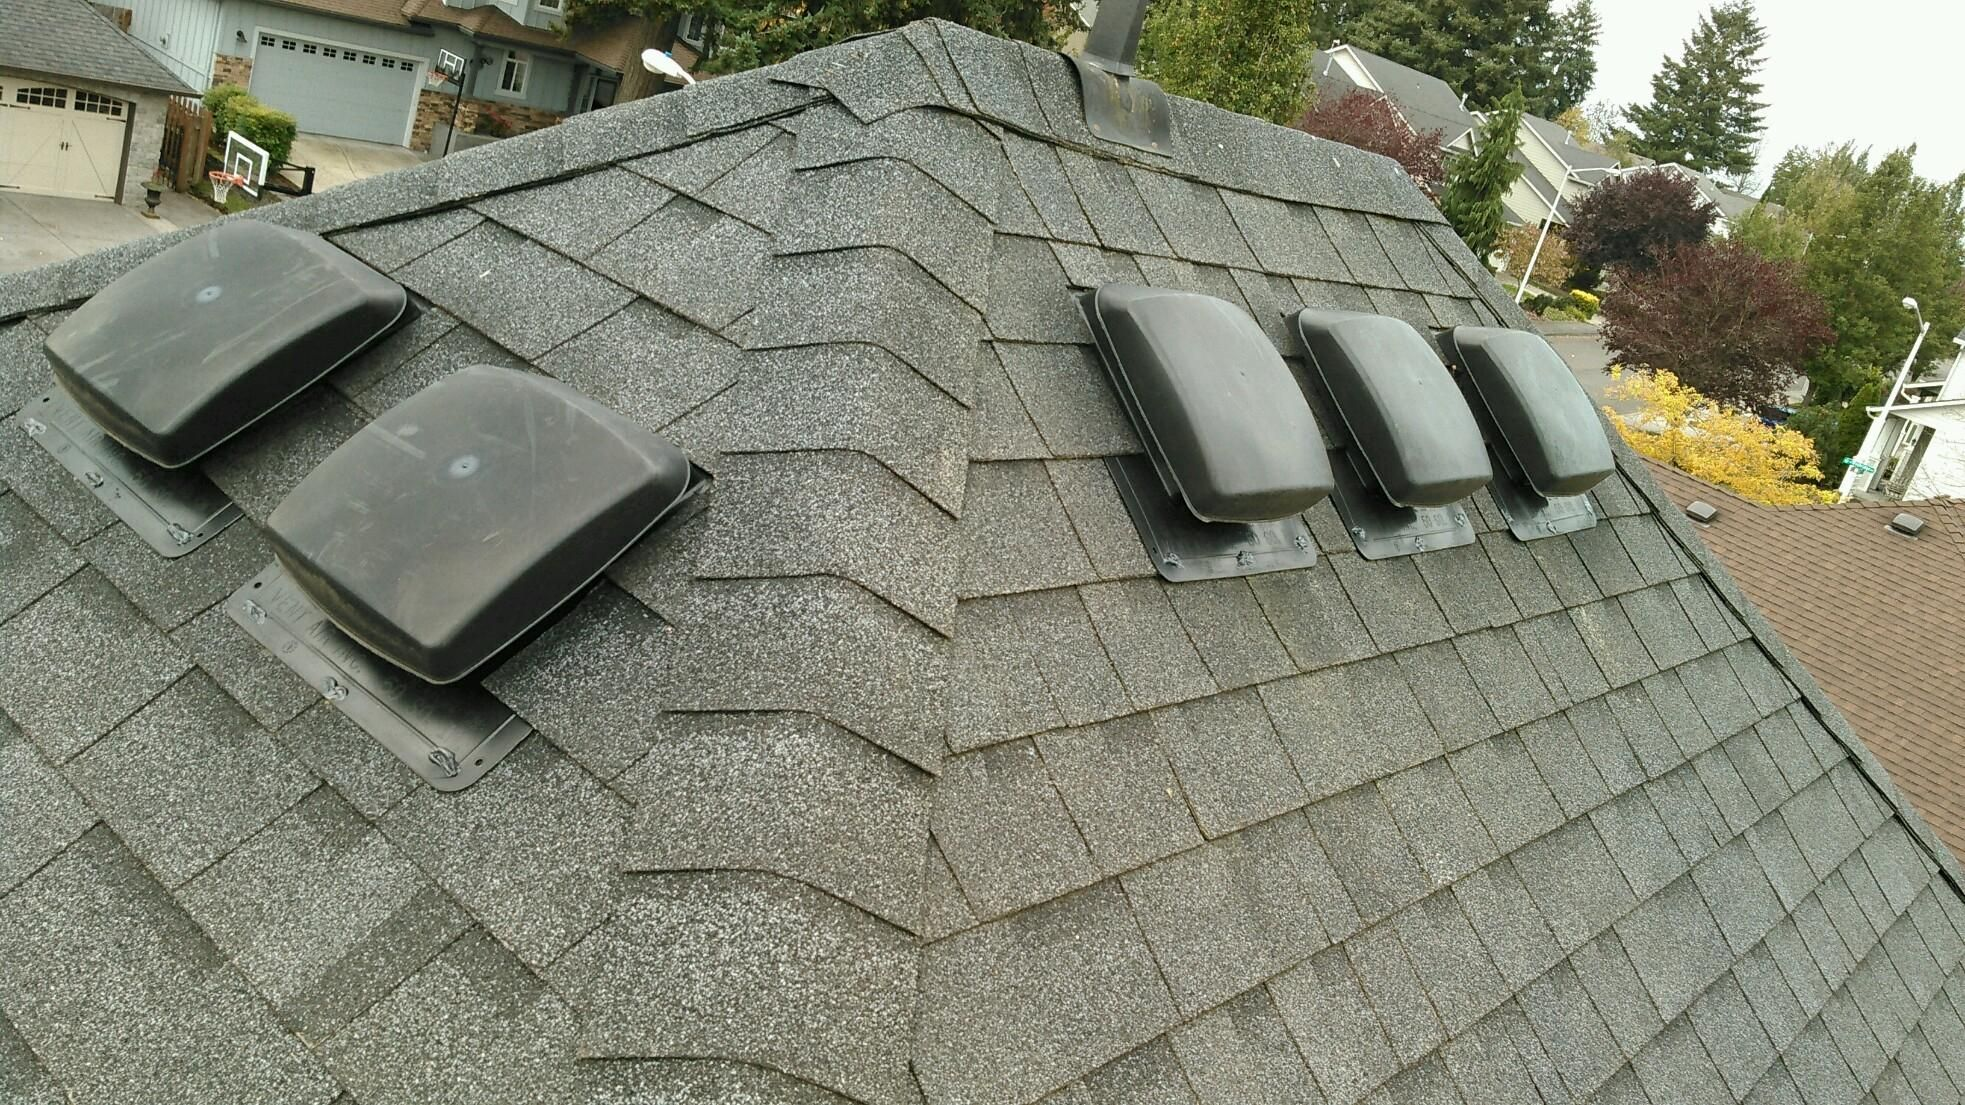 Composition Roof Maintenance Repair Vancouver Wa By Northwest Roof Maintenance Composition Roof Architectural Shingles Roofing Systems